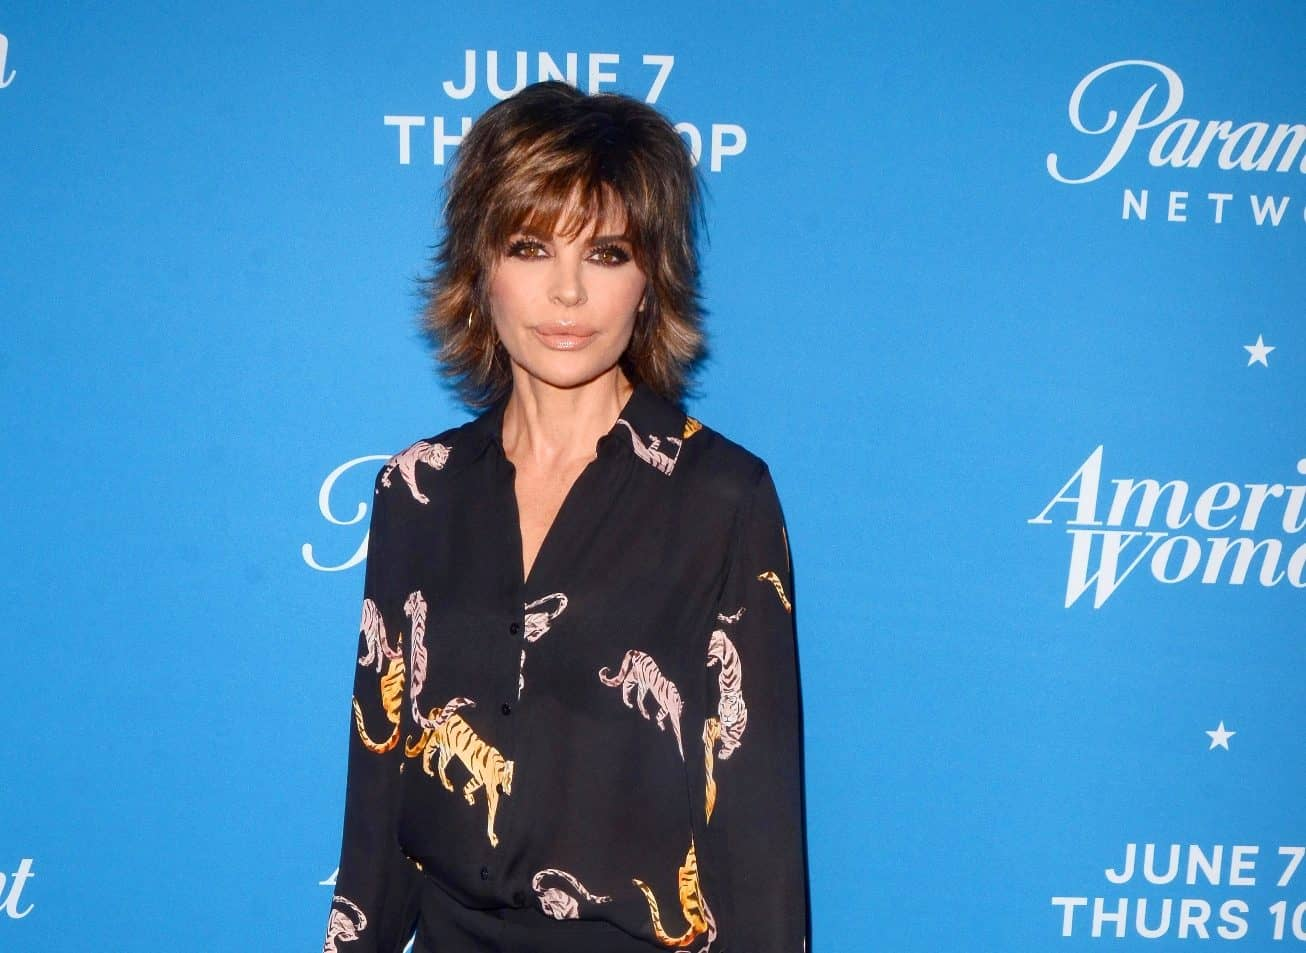 """RHOBH's Lisa Rinna Responds to Those Who """"Judge"""" Her Parenting and Mom-Shamers Amid Drama With Garcelle, Wants Them to Stop Acting Like They're """"Perfect"""" and Says Everyone Has """"Demons"""""""